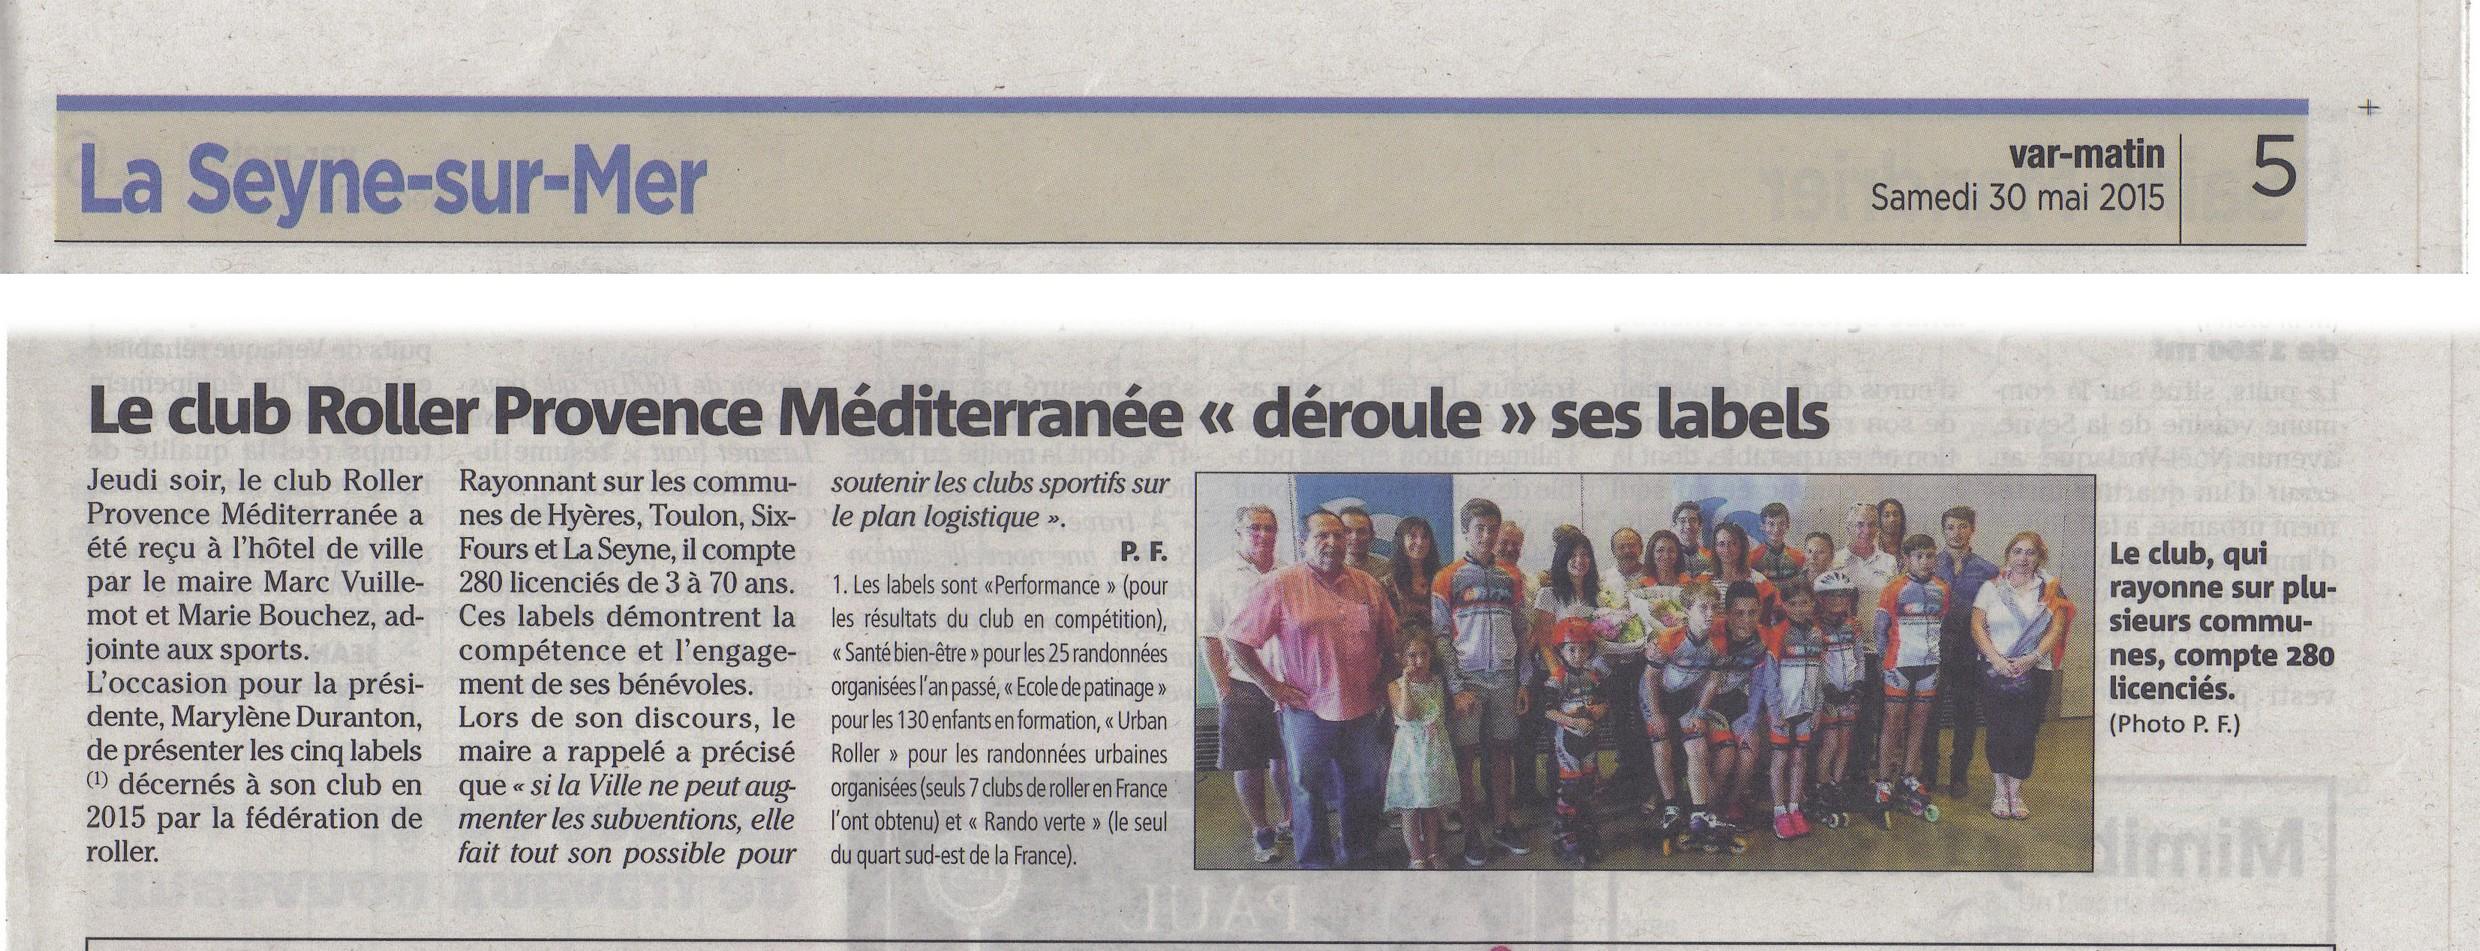 2015 05 30 ecole article var matin